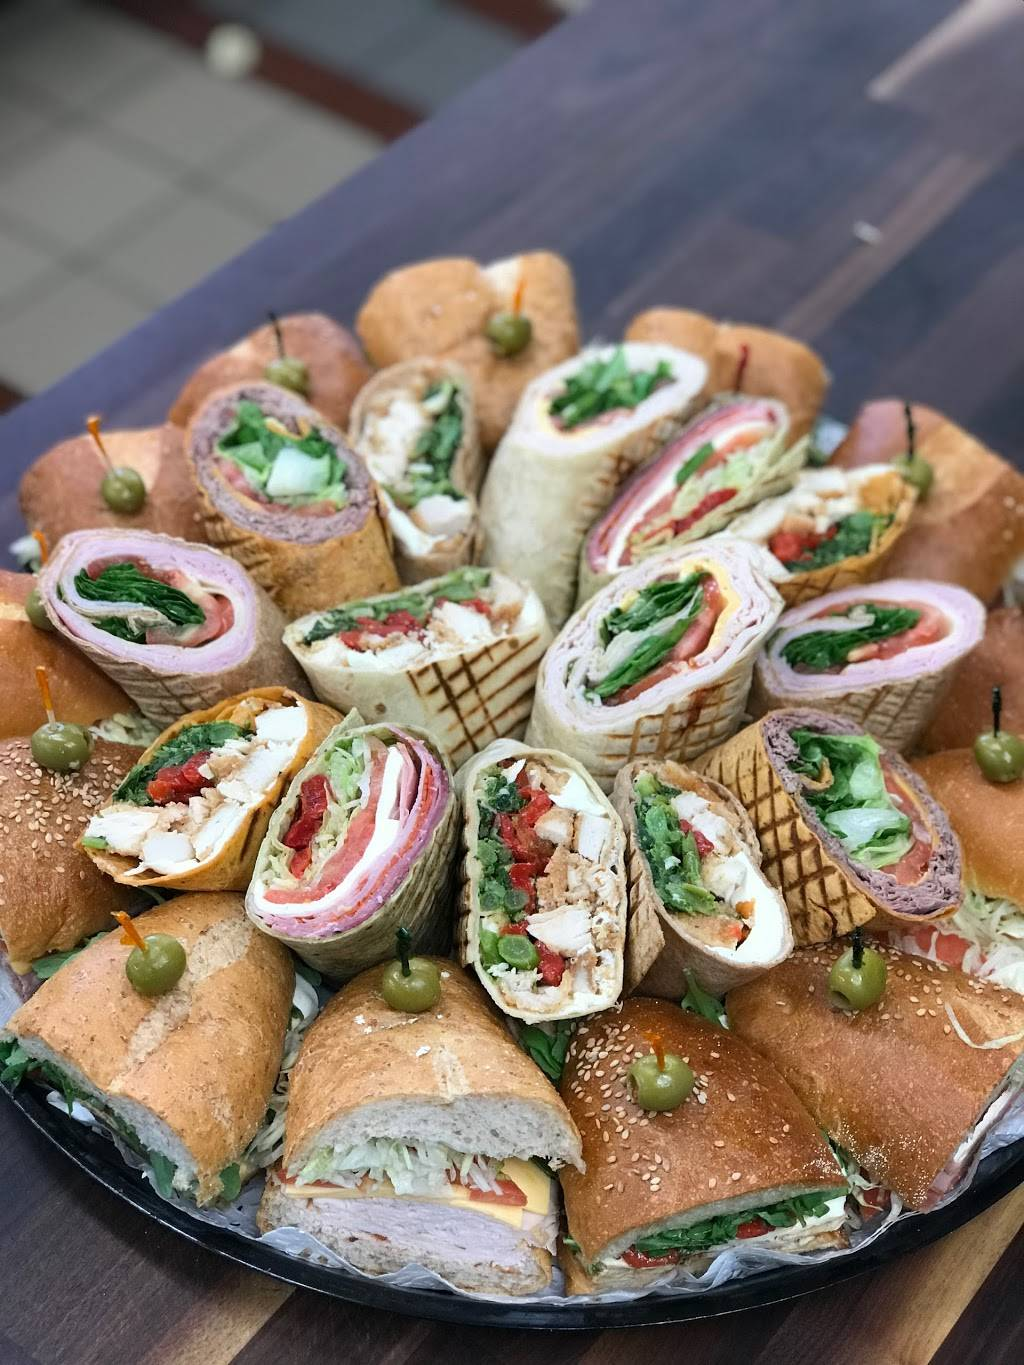 Benateris Italian Gourmet Deli & Catering | restaurant | 129-21 14th Ave, College Point, NY 11356, USA | 7184459240 OR +1 718-445-9240